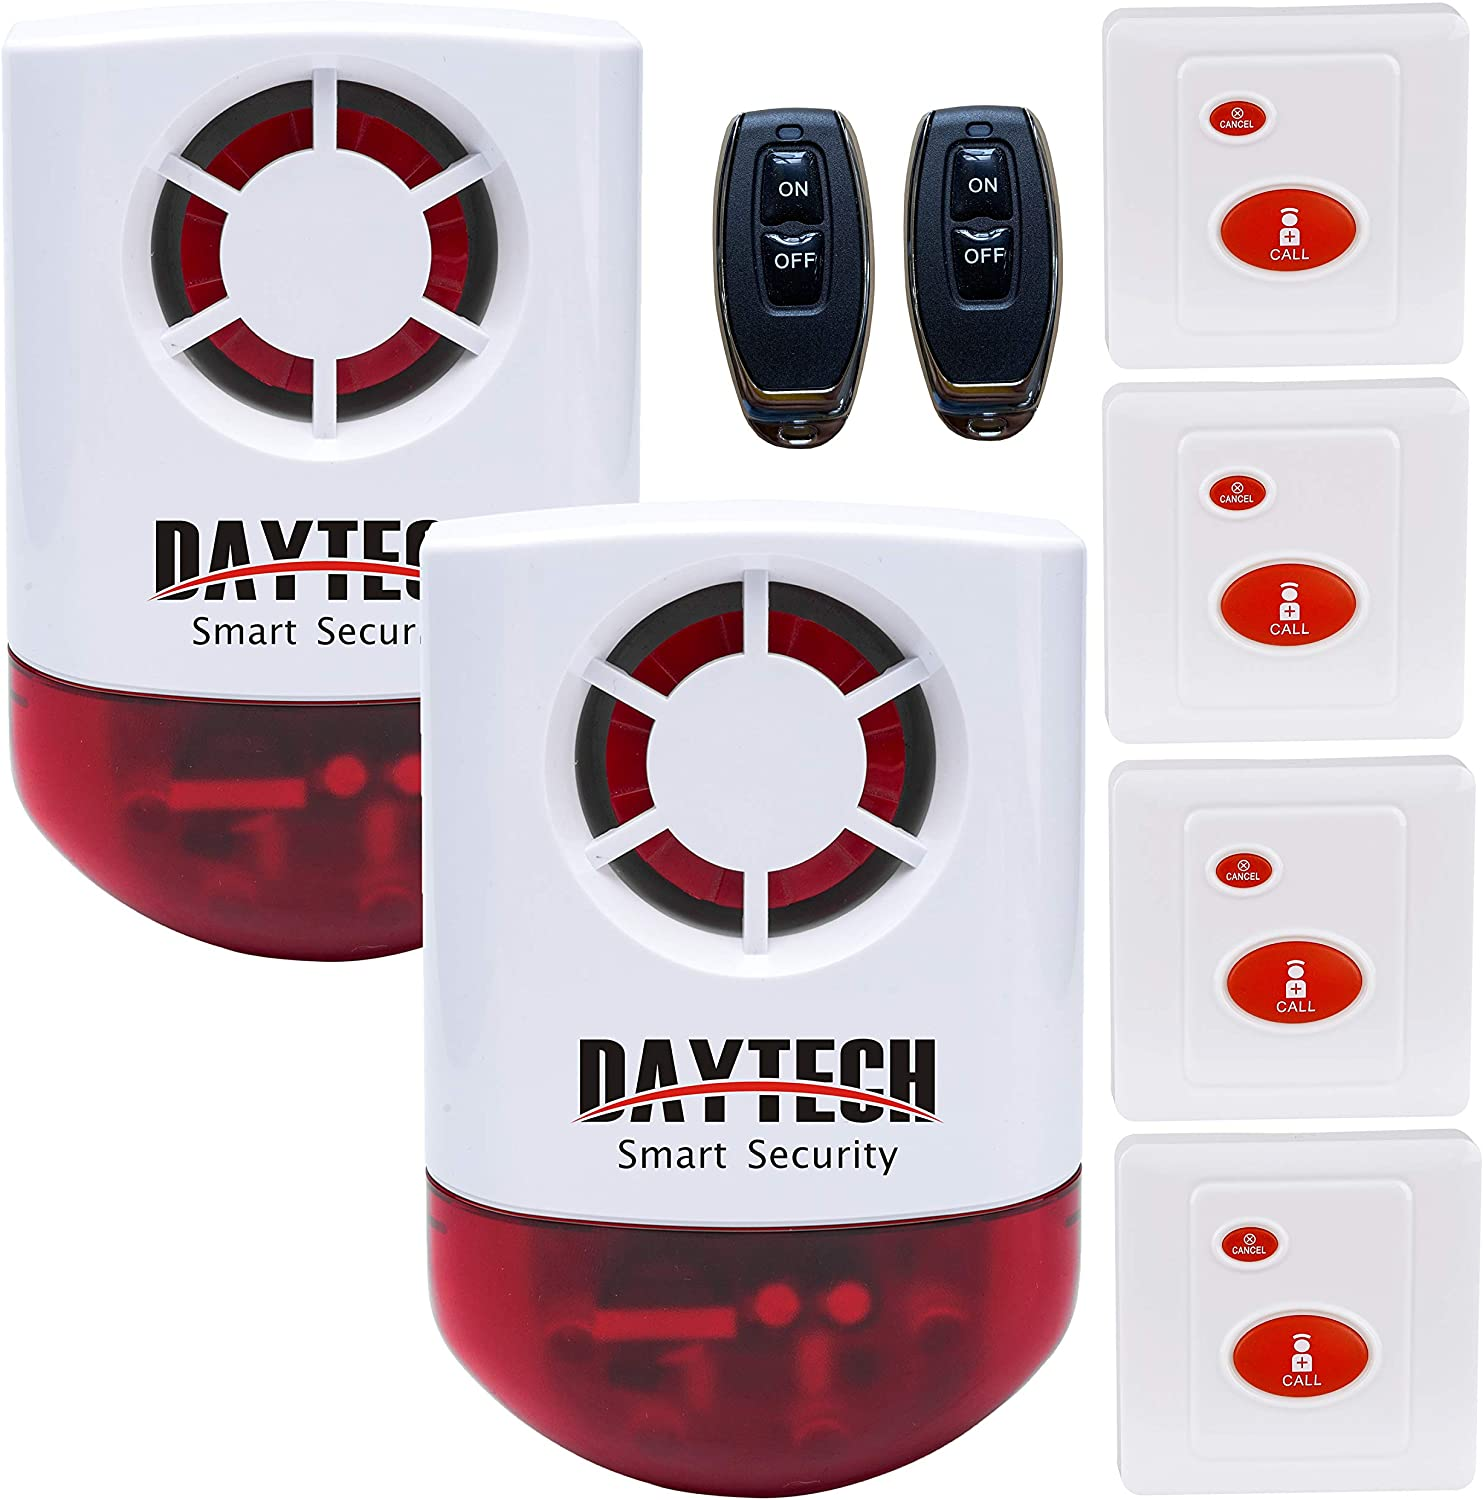 Daytech Wireless Strobe Siren Alarm Home Caring Loud Outdoor SOS Alert System 1 Red Flashing Siren,2 Remotes Panic Button, 4 Emergency Button for Store Home Hotel Jewelry Shop Security & Fire Alarm